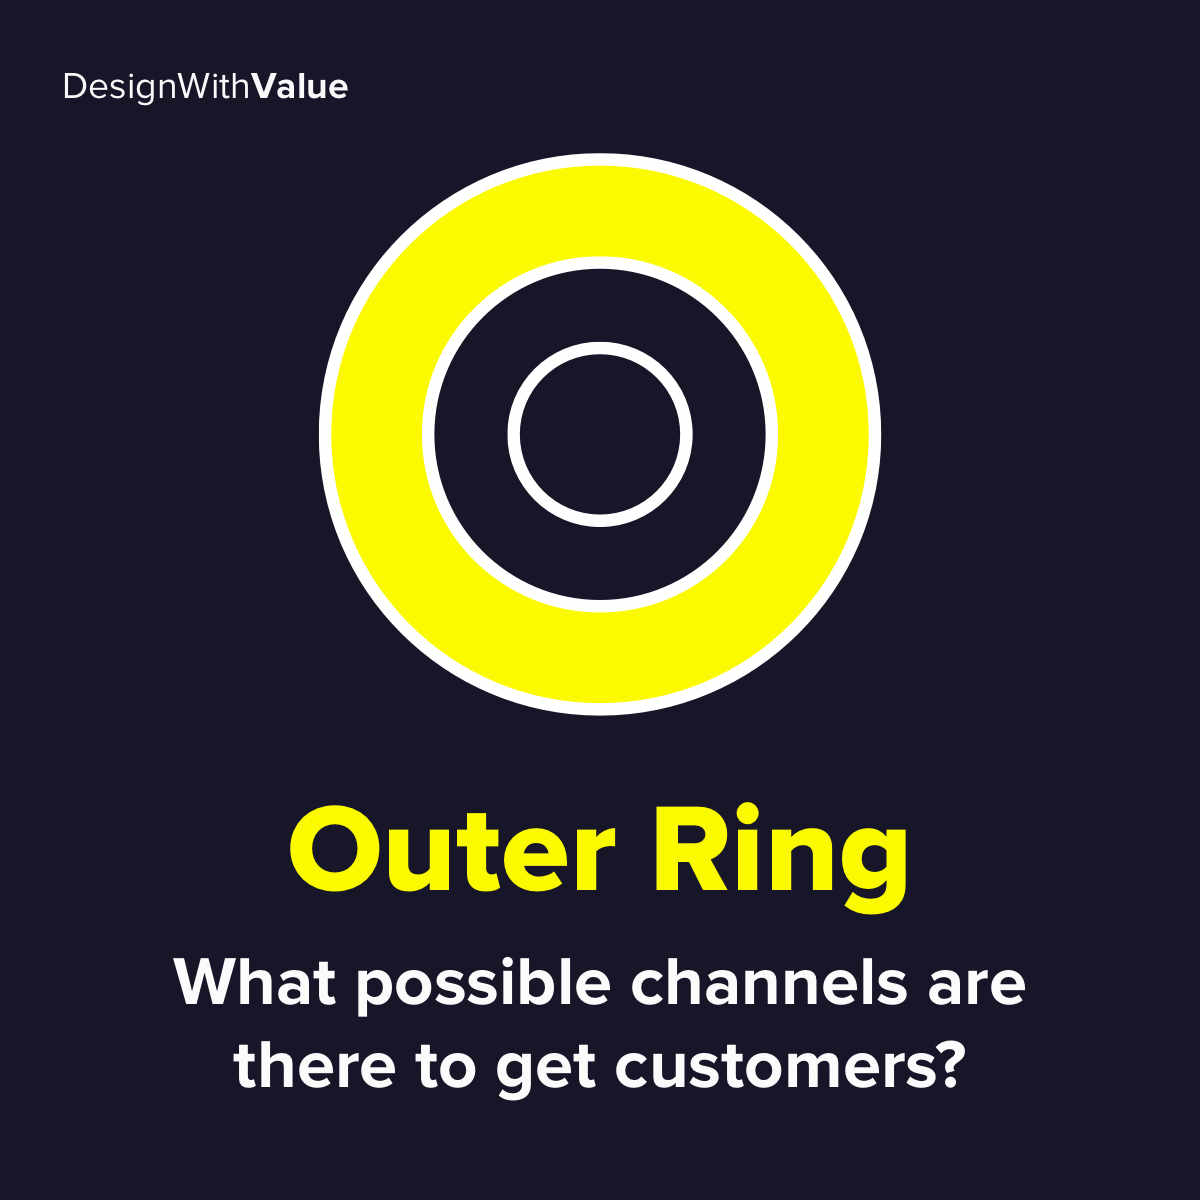 Outer ring: What possible channels are there to get customers?